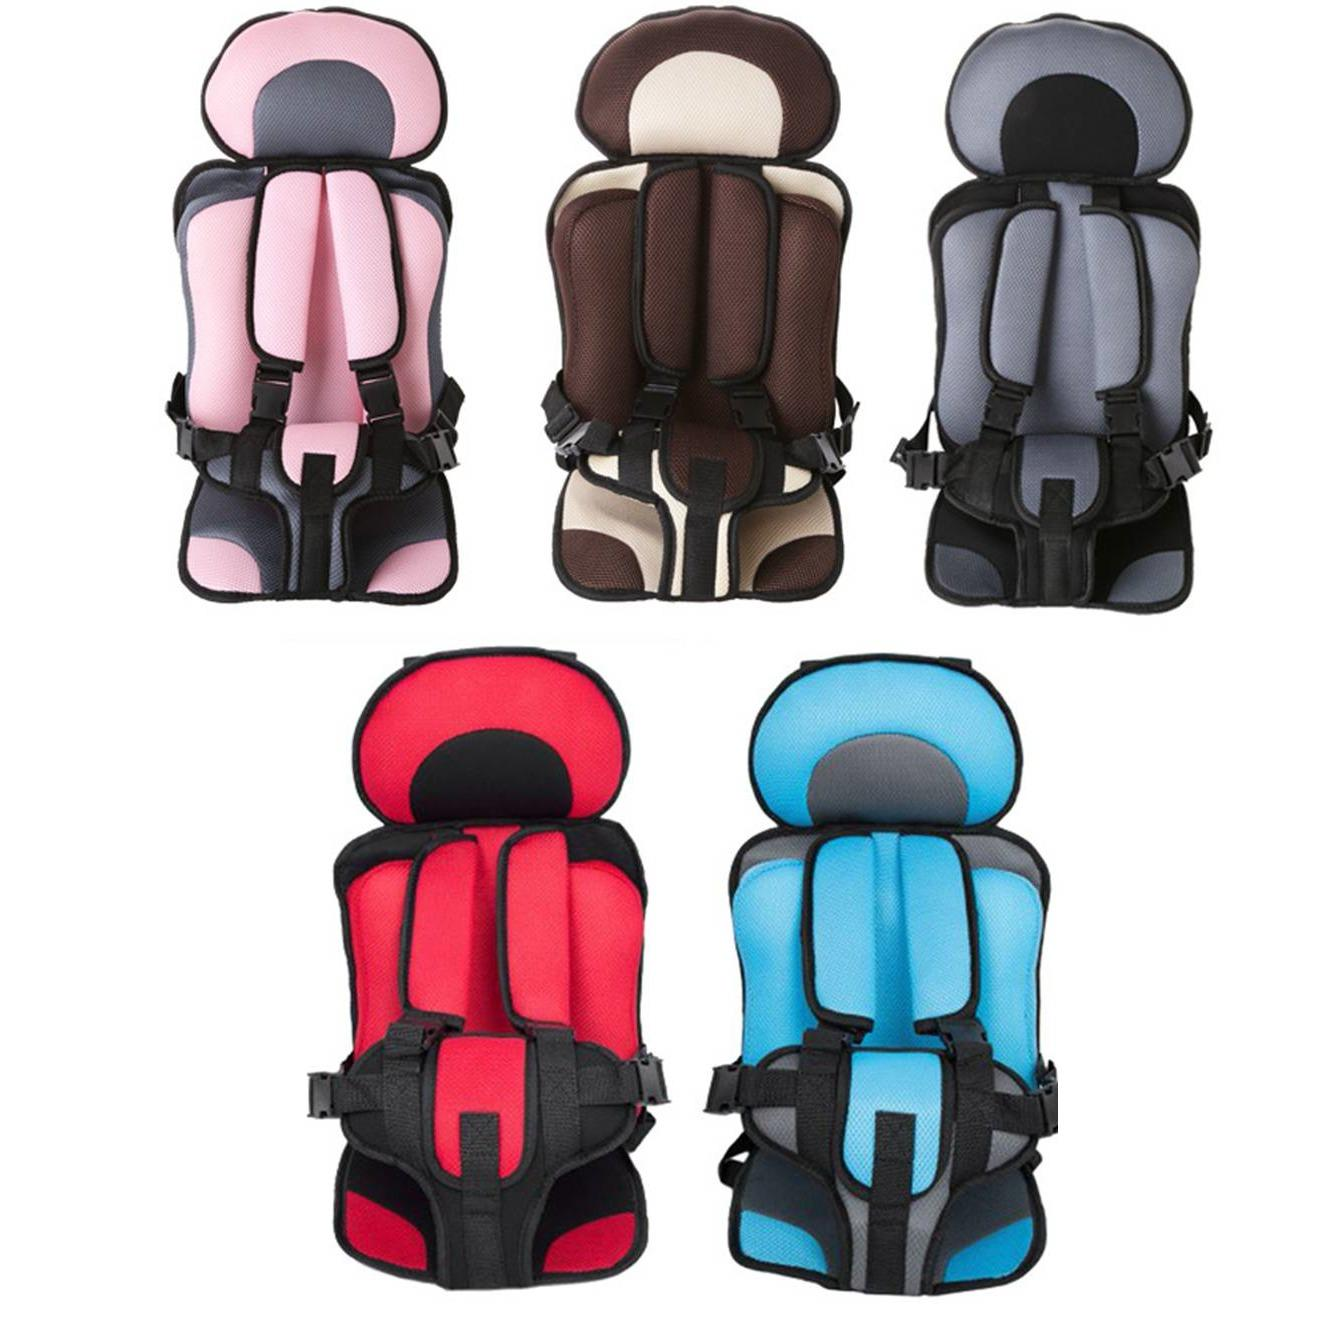 Car Safety Seat Booster Cushion Chair For Toddler To Child Age 3 To 12 Newborn Baby Children Kids Free Shipping